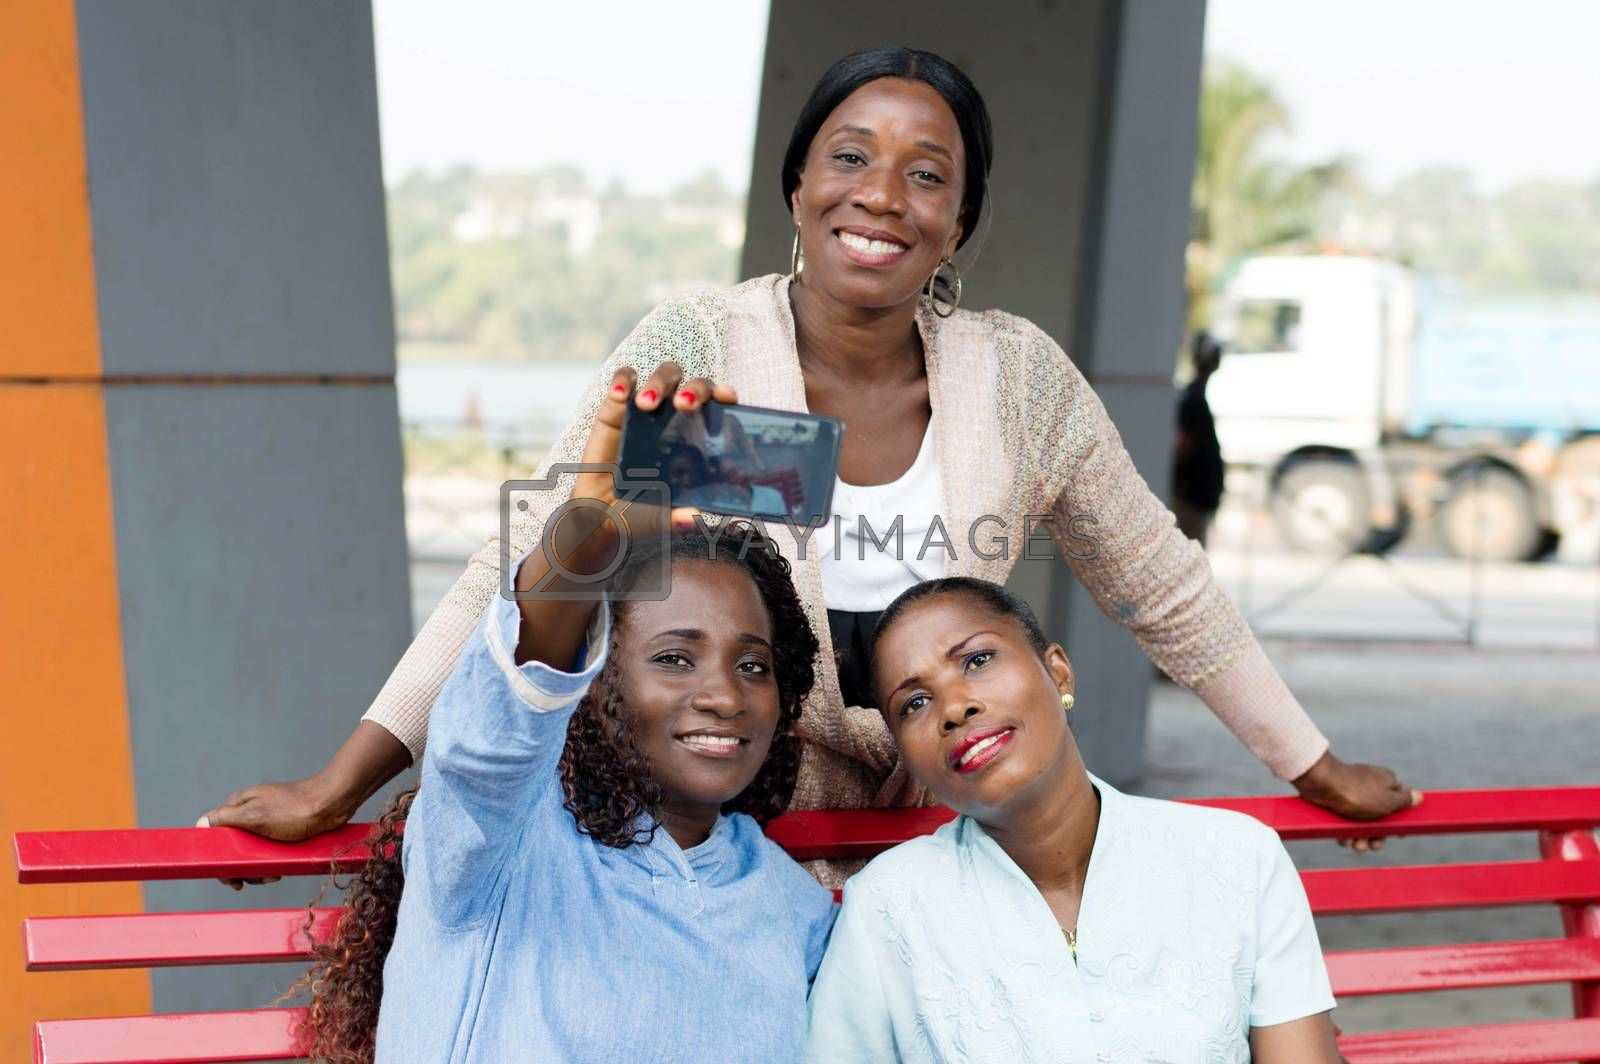 These young women sitting on a bench are photographed with a cell phone.